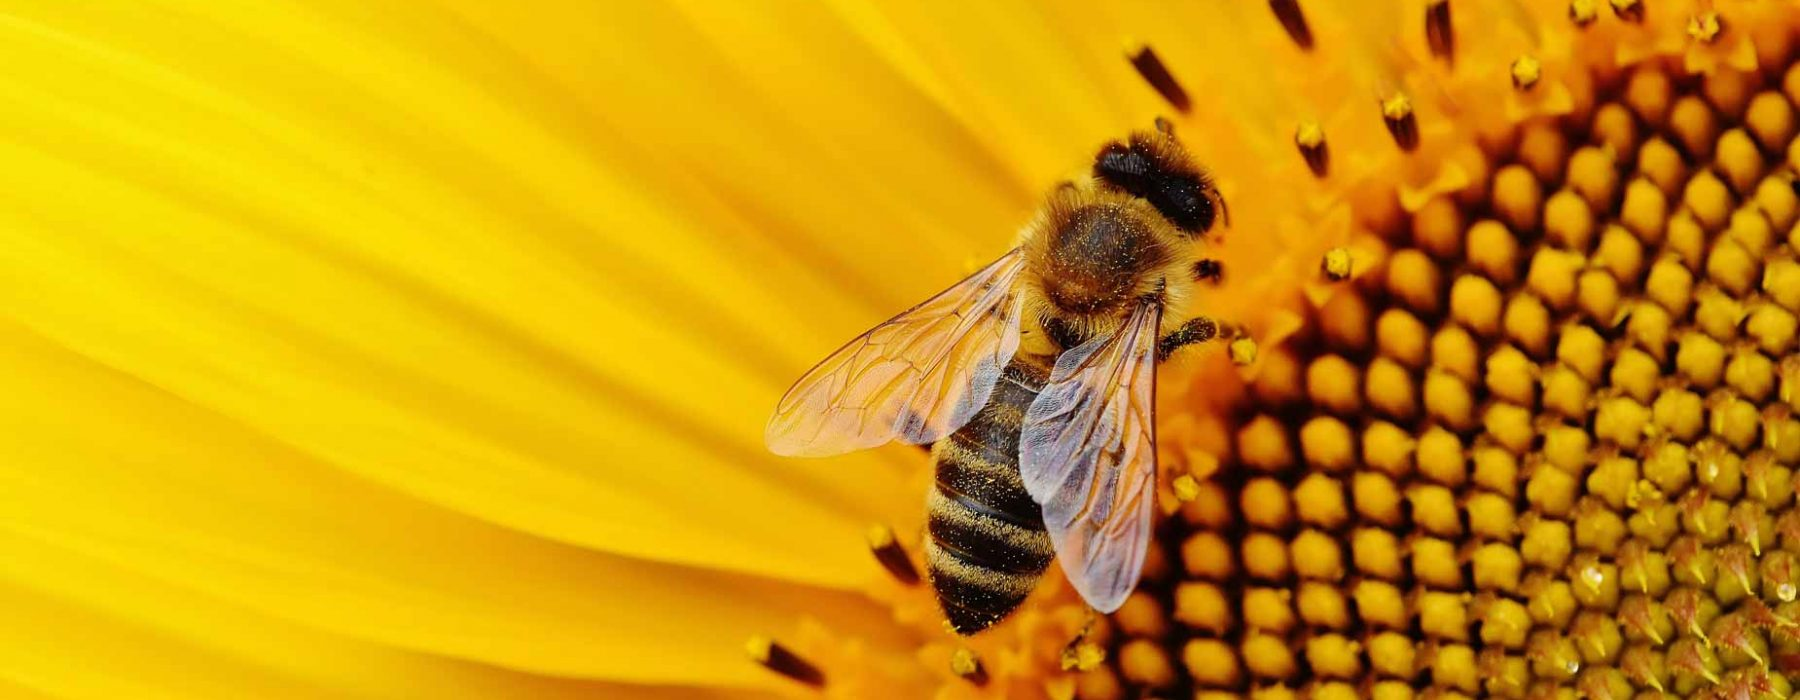 Pure wellness: when the beehive marries scientific research